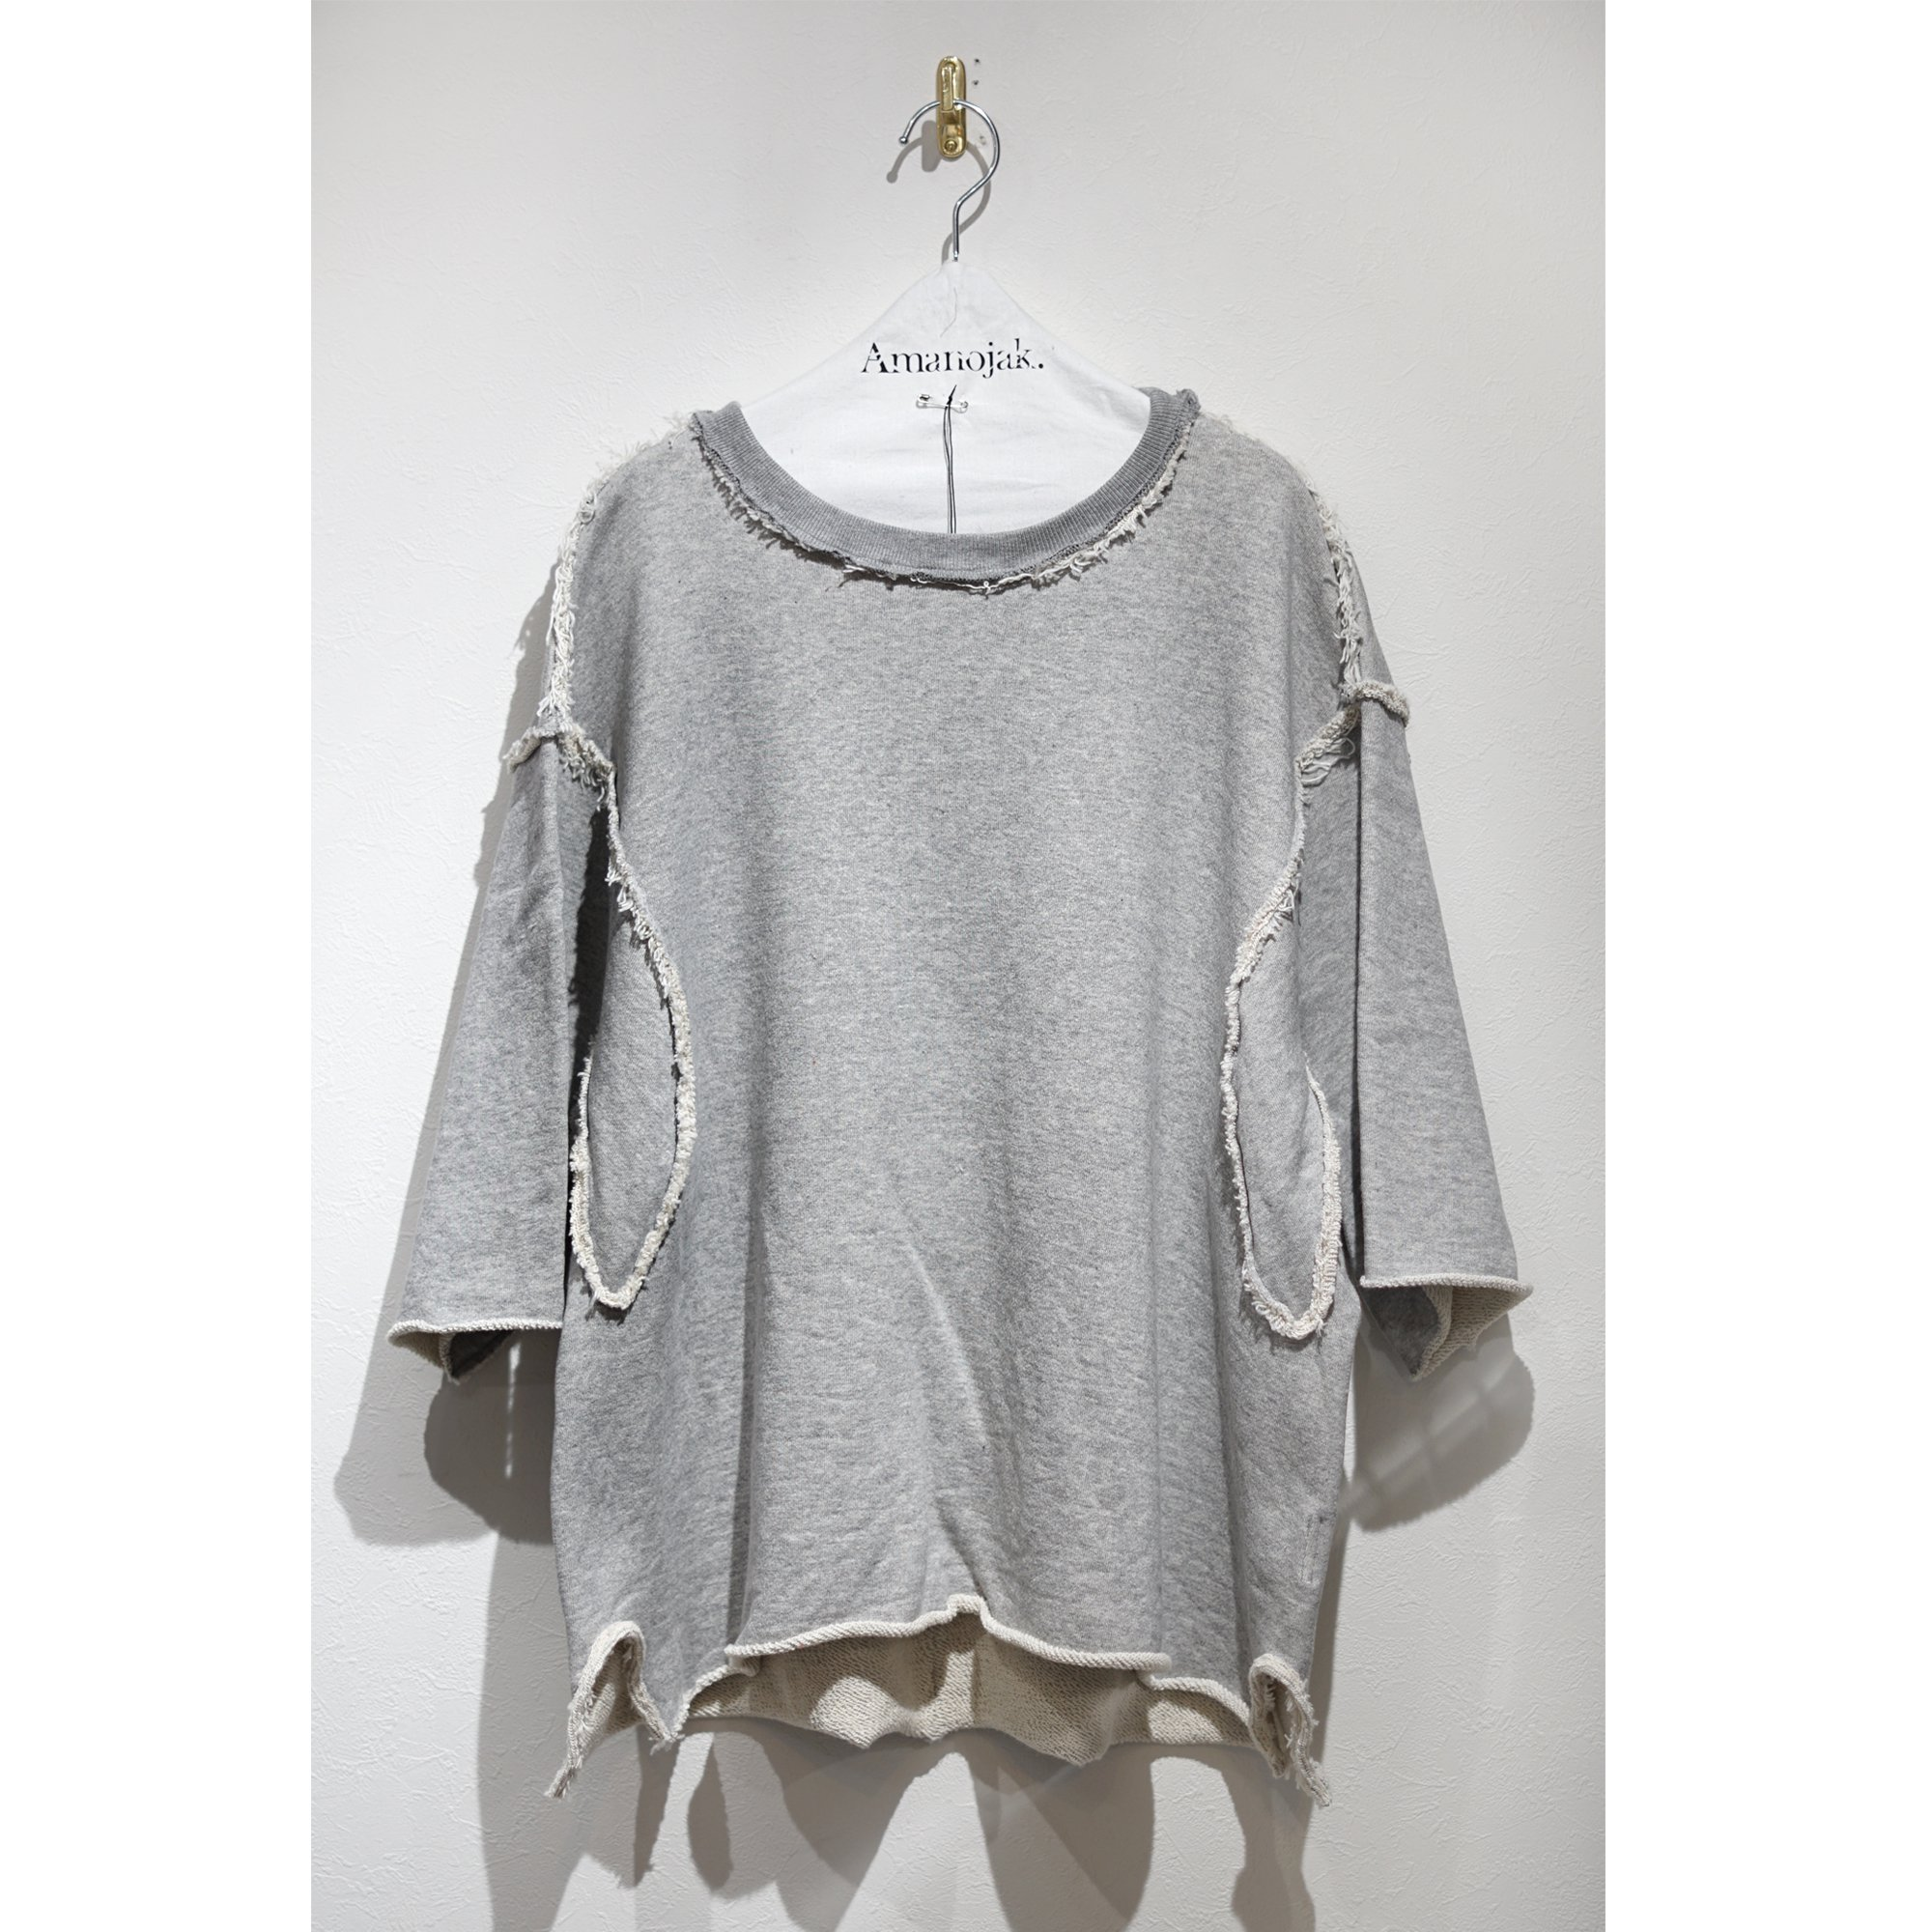 <img class='new_mark_img1' src='https://img.shop-pro.jp/img/new/icons56.gif' style='border:none;display:inline;margin:0px;padding:0px;width:auto;' />MAINU-SWEAT THUMBS ARMHOLE CREW GRAY